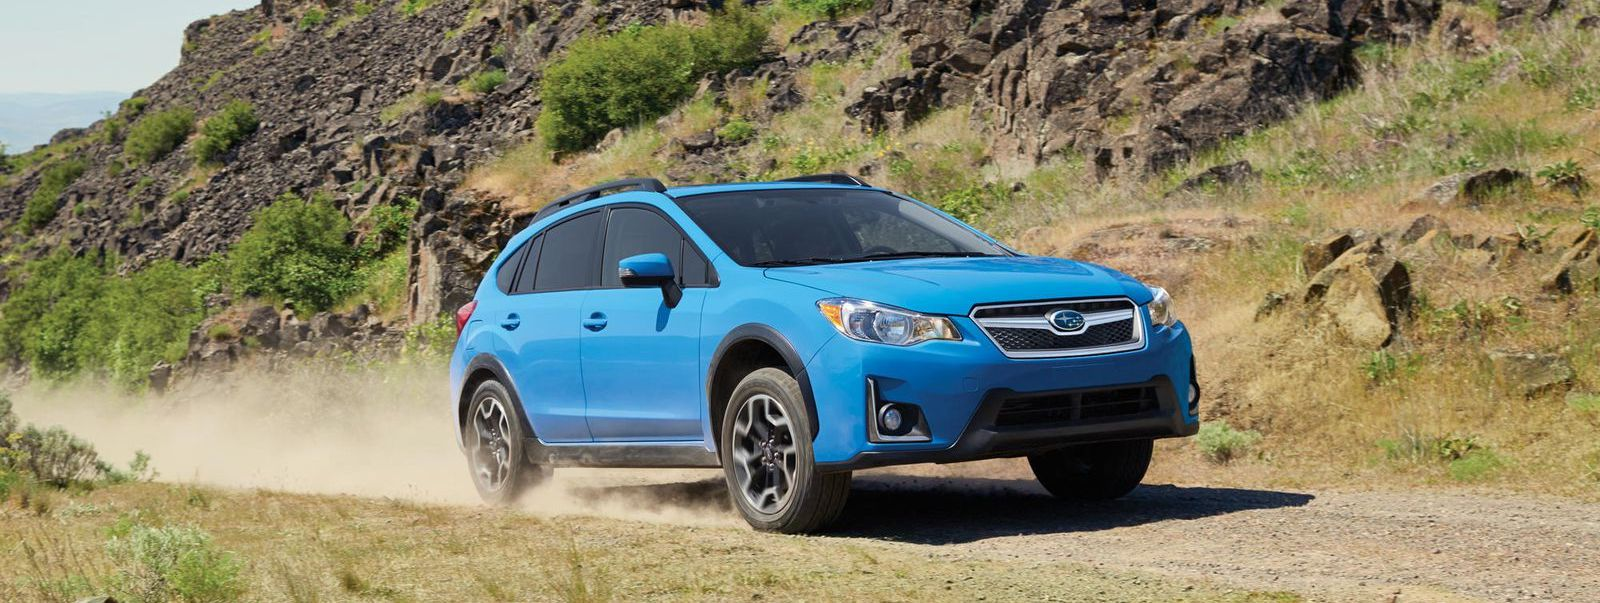 Subaru plans biggest-ever global recall over brake lights